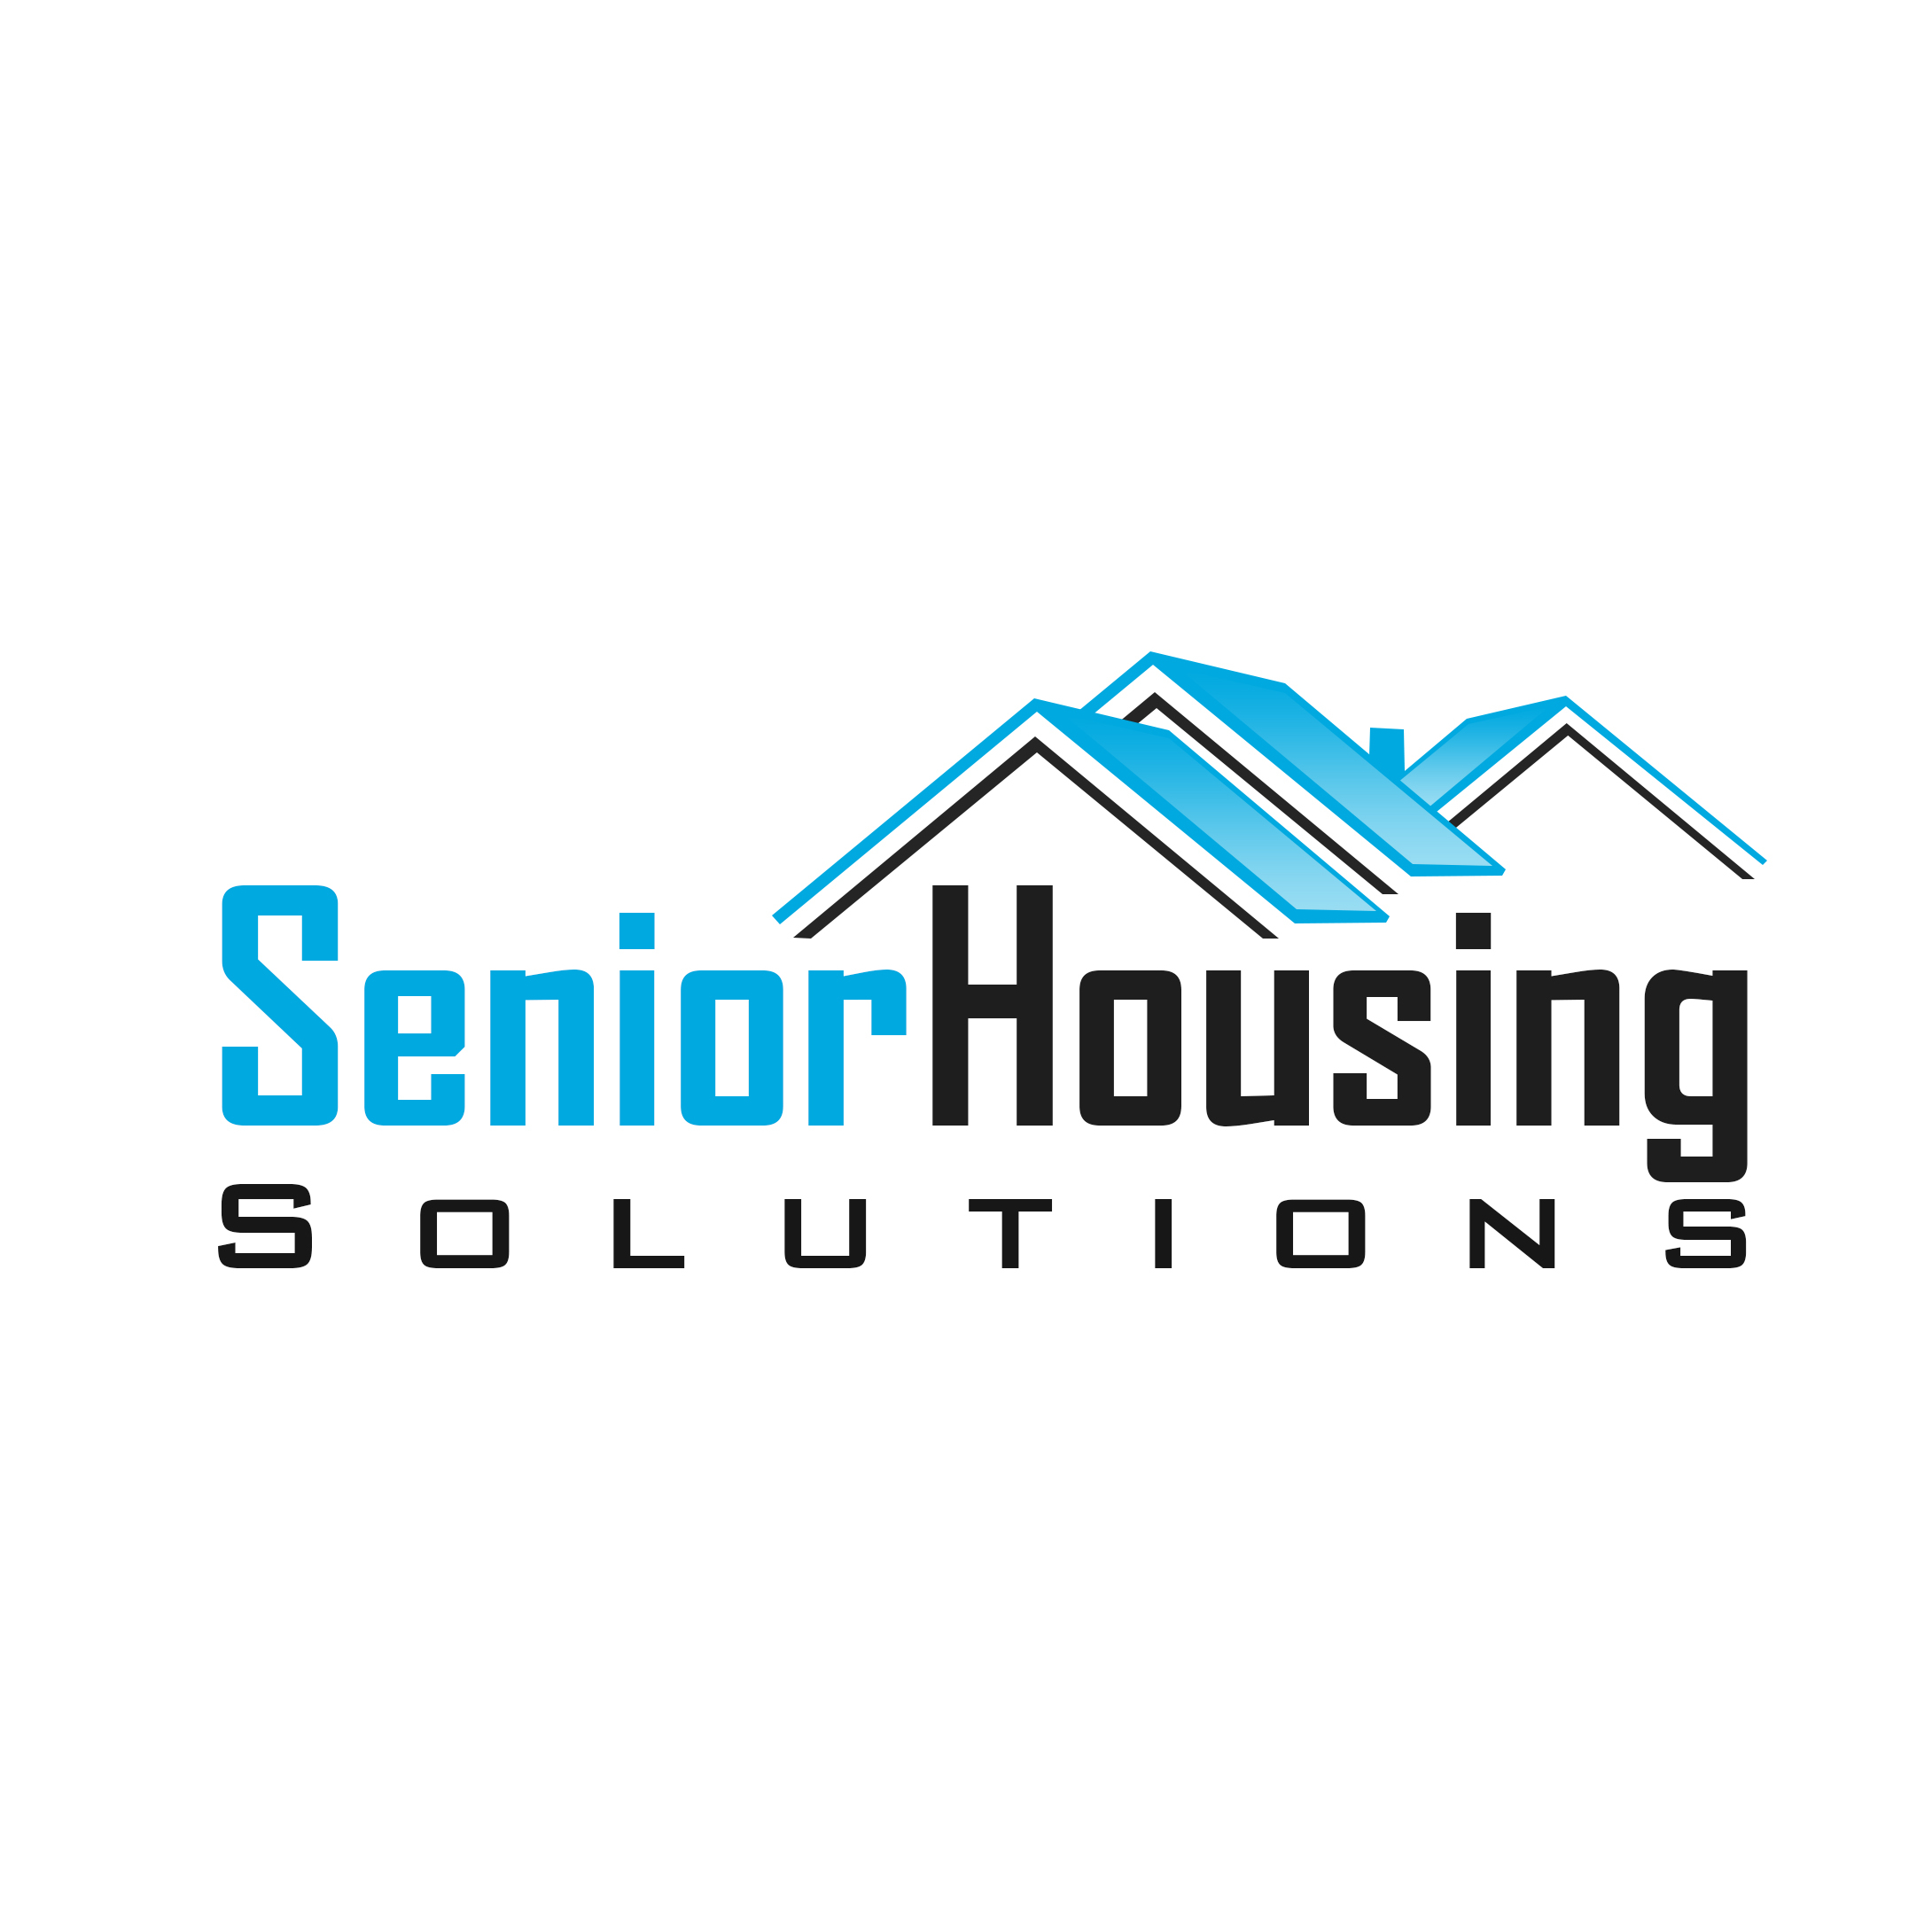 Senior Housing Solutions Coupons near me in Bonita Springs  8coupons